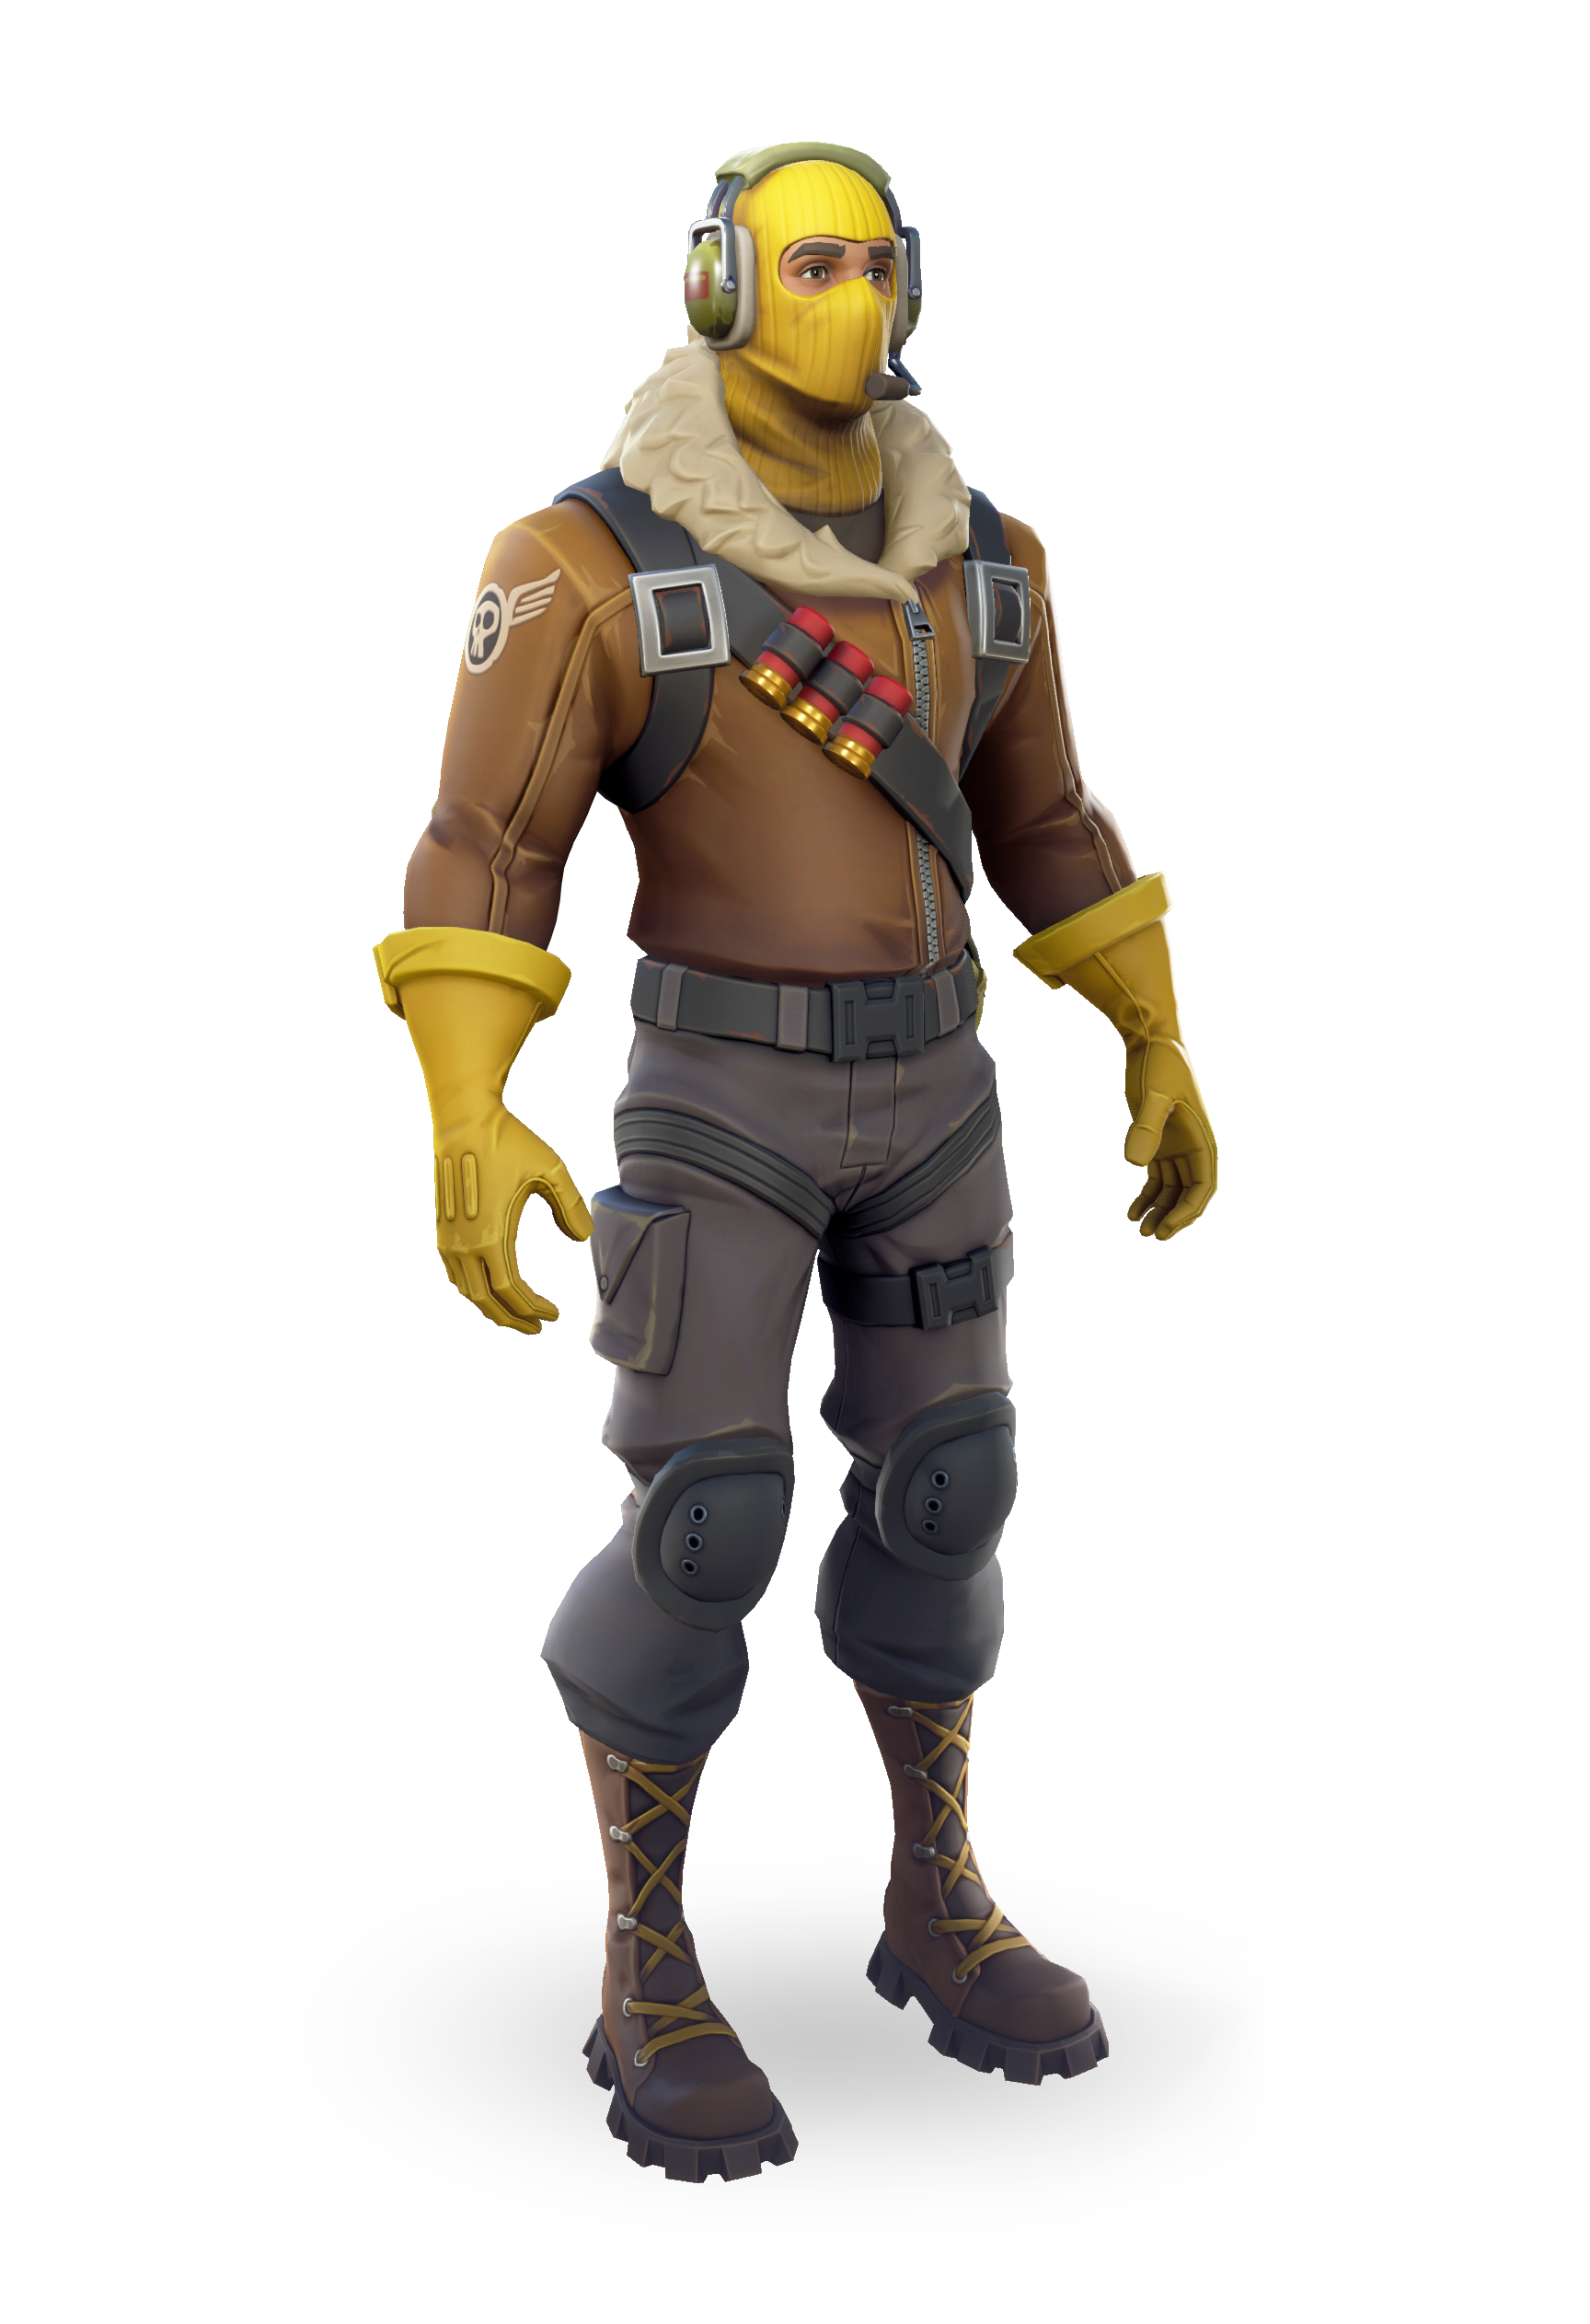 fortnite raptor skin png